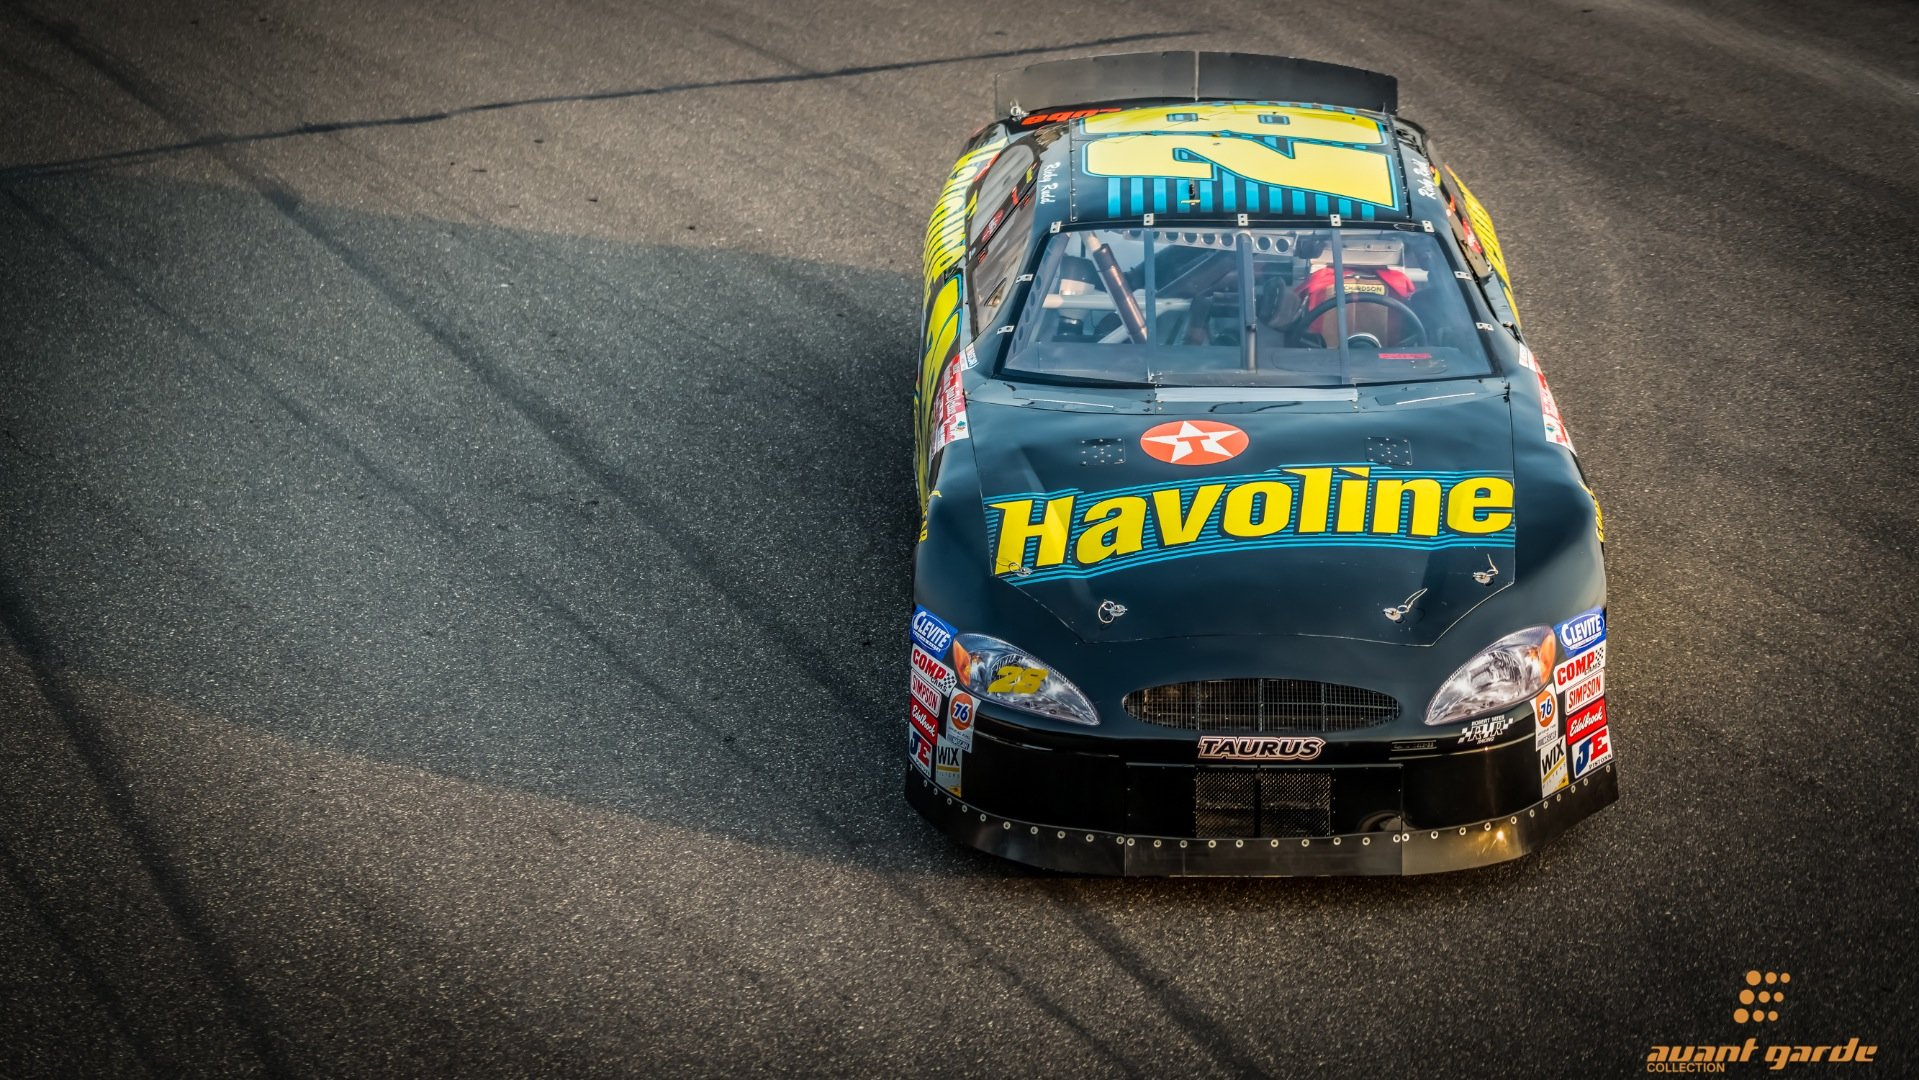 2000 Ford Taurus Nascar Race Car Fast 750-HP Ricky Rudd $99k For Sale (picture 1 of 6)